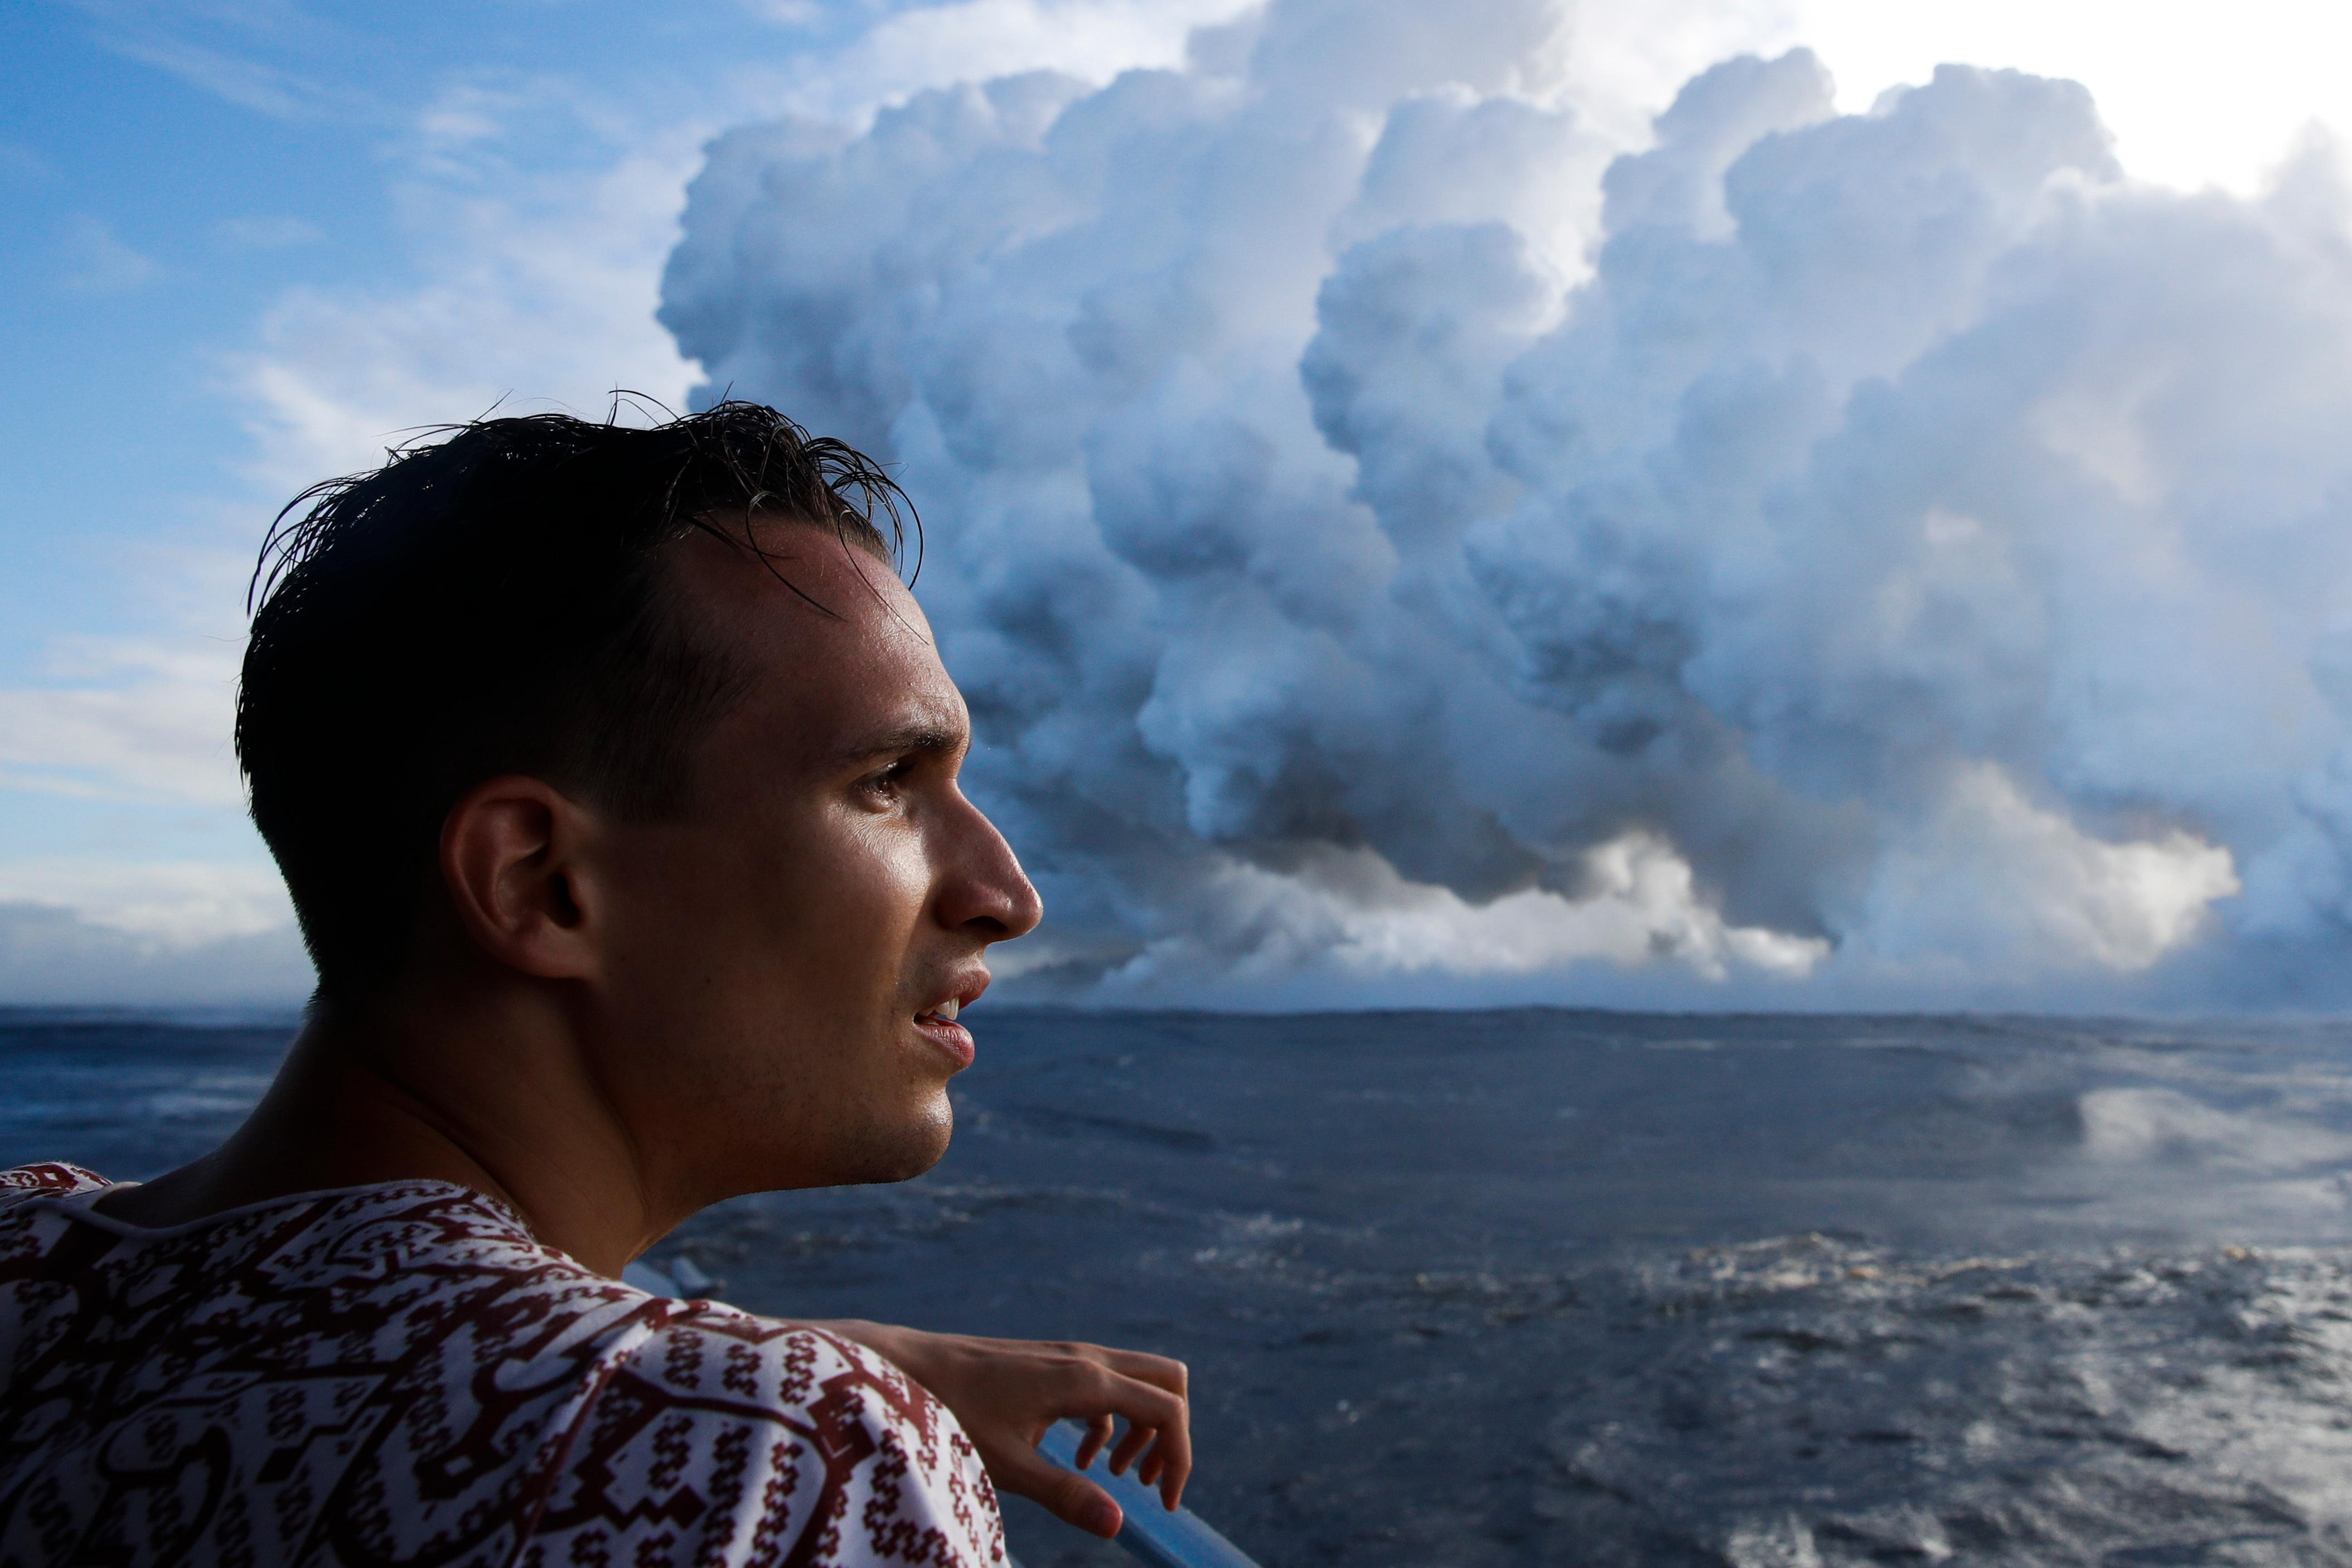 Gabor Kovacs, visiting from Hungary, watches as lava flows into the ocean, generating plumes of steam, near Pahoa, Hawaii Sunday, May 20, 2018. Kilauea volcano that is oozing, spewing and exploding on Hawaii's Big Island has gotten more hazardous in recent days, with rivers of molten rock pouring into the ocean Sunday and flying lava causing the first major injury. (AP Photo/Jae C. Hong)